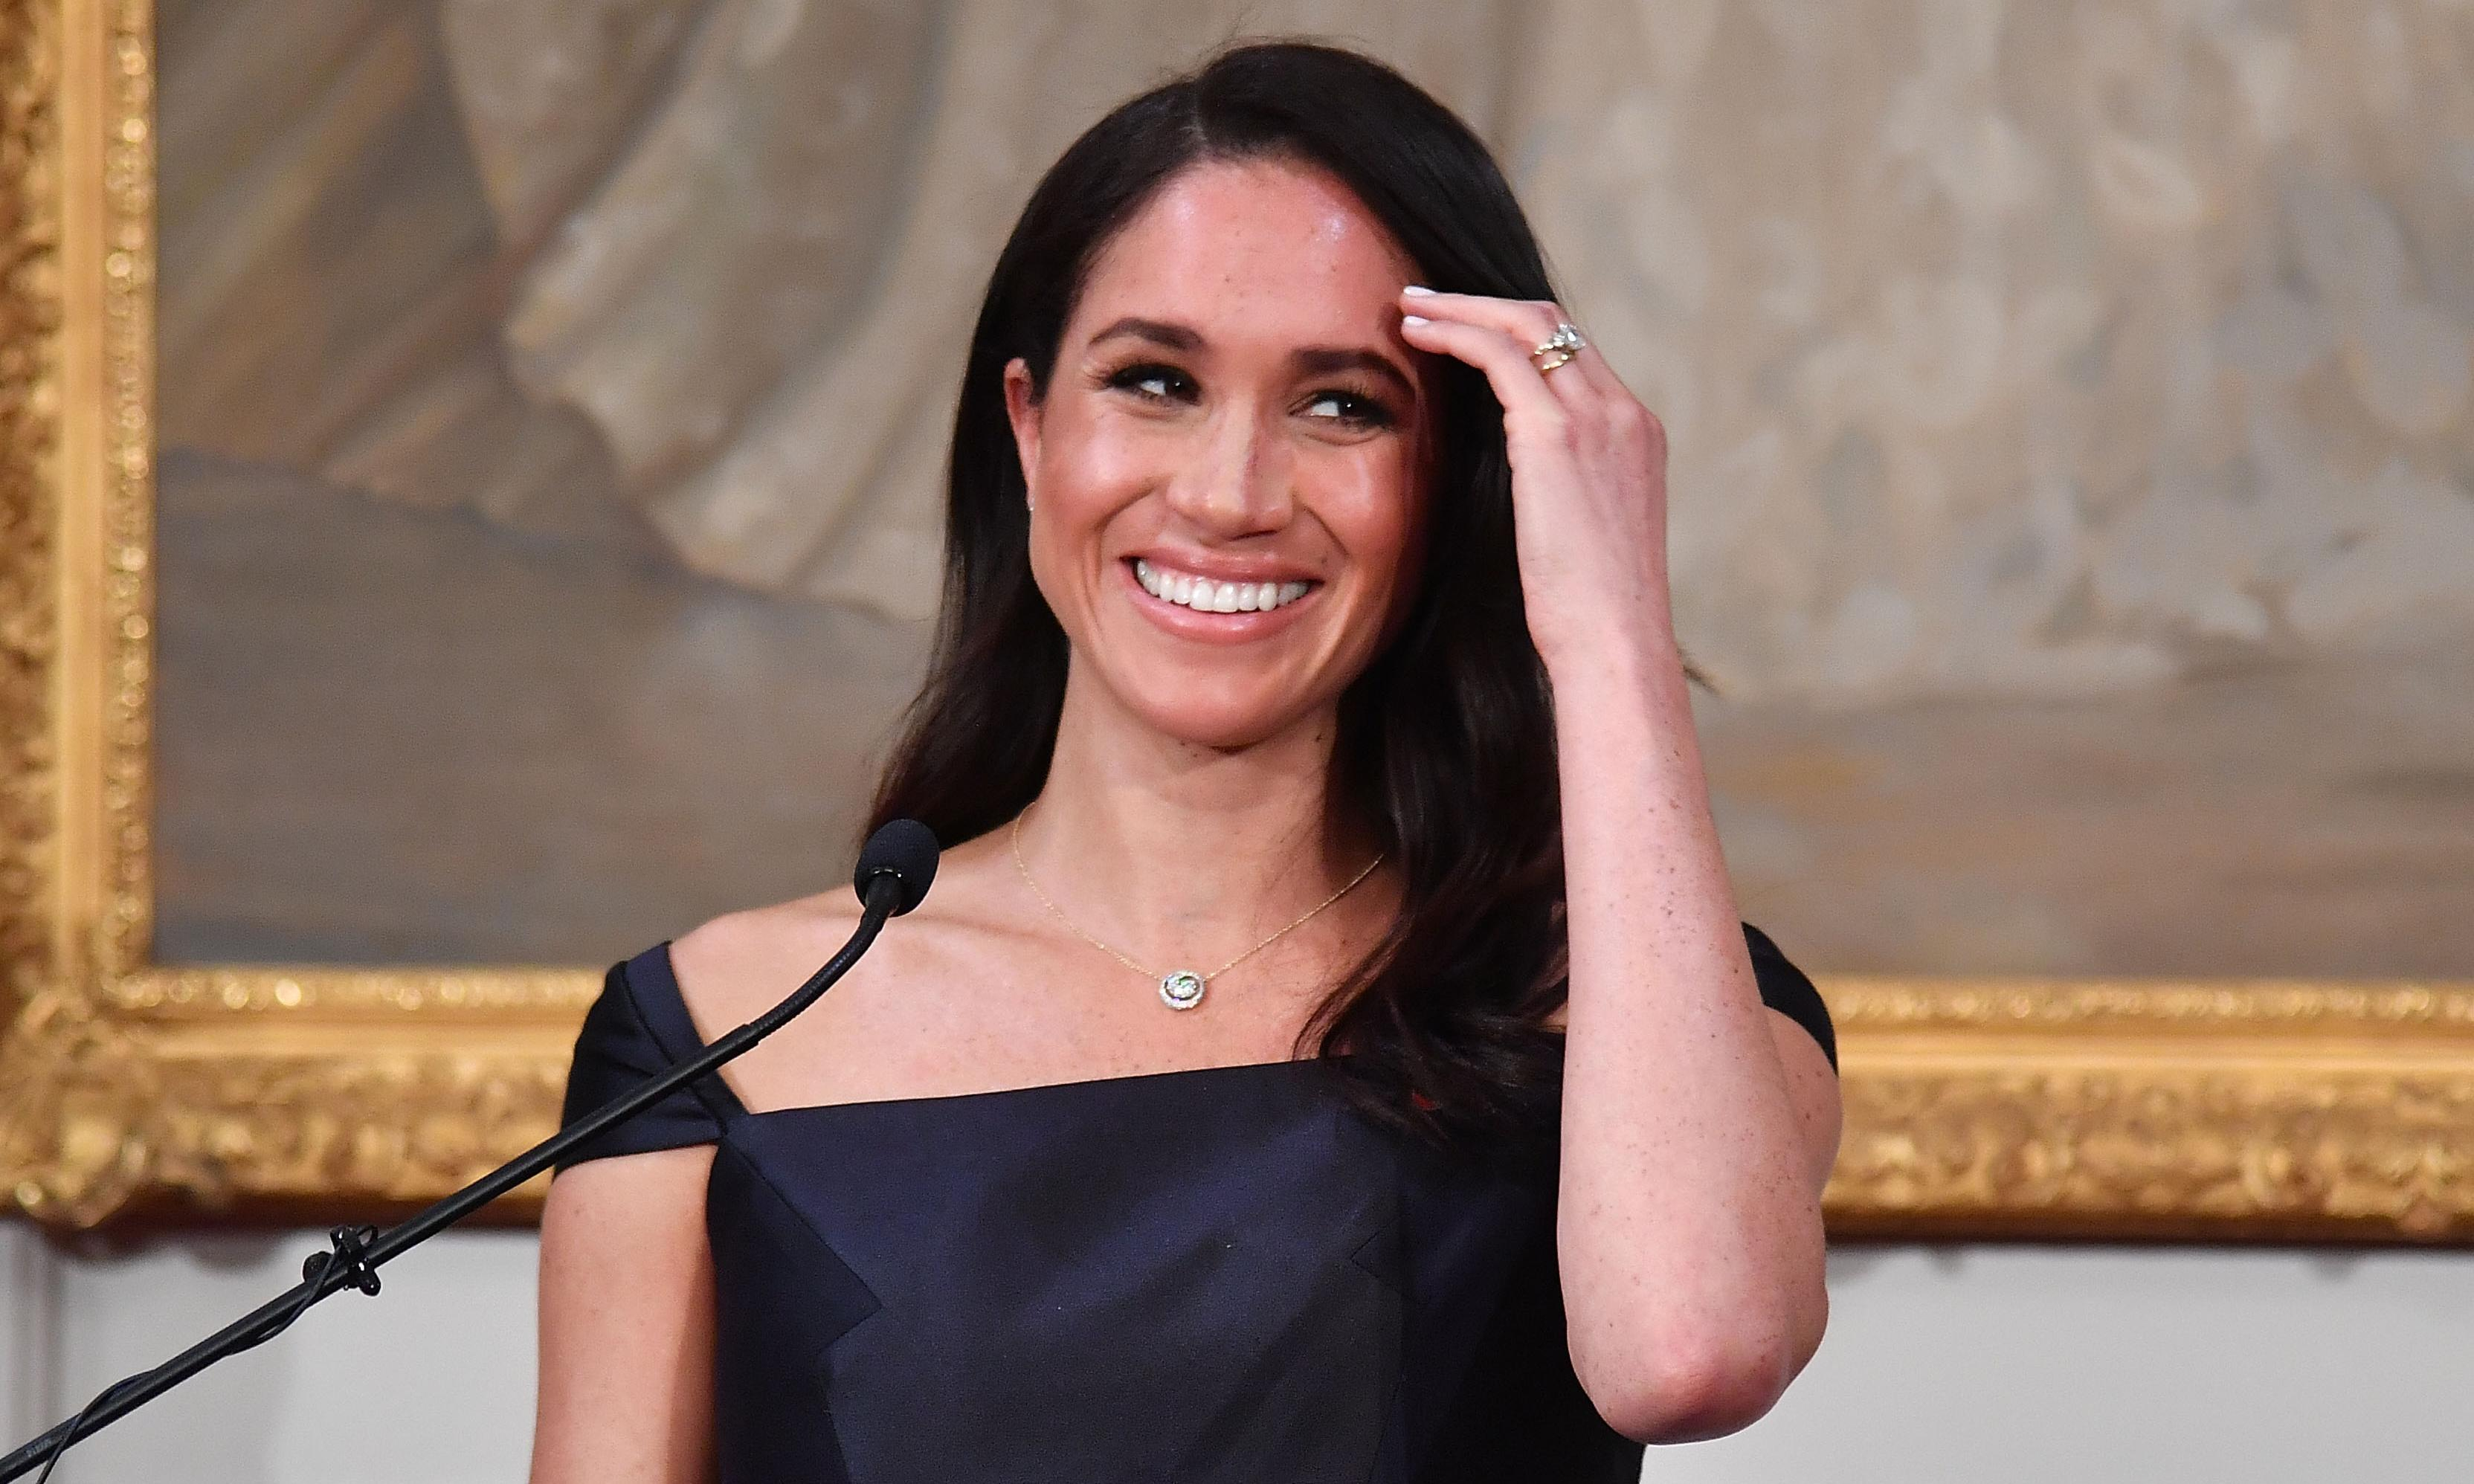 Royal stuff-up? 60 Minutes shocks with use of racist critic in attack on Meghan